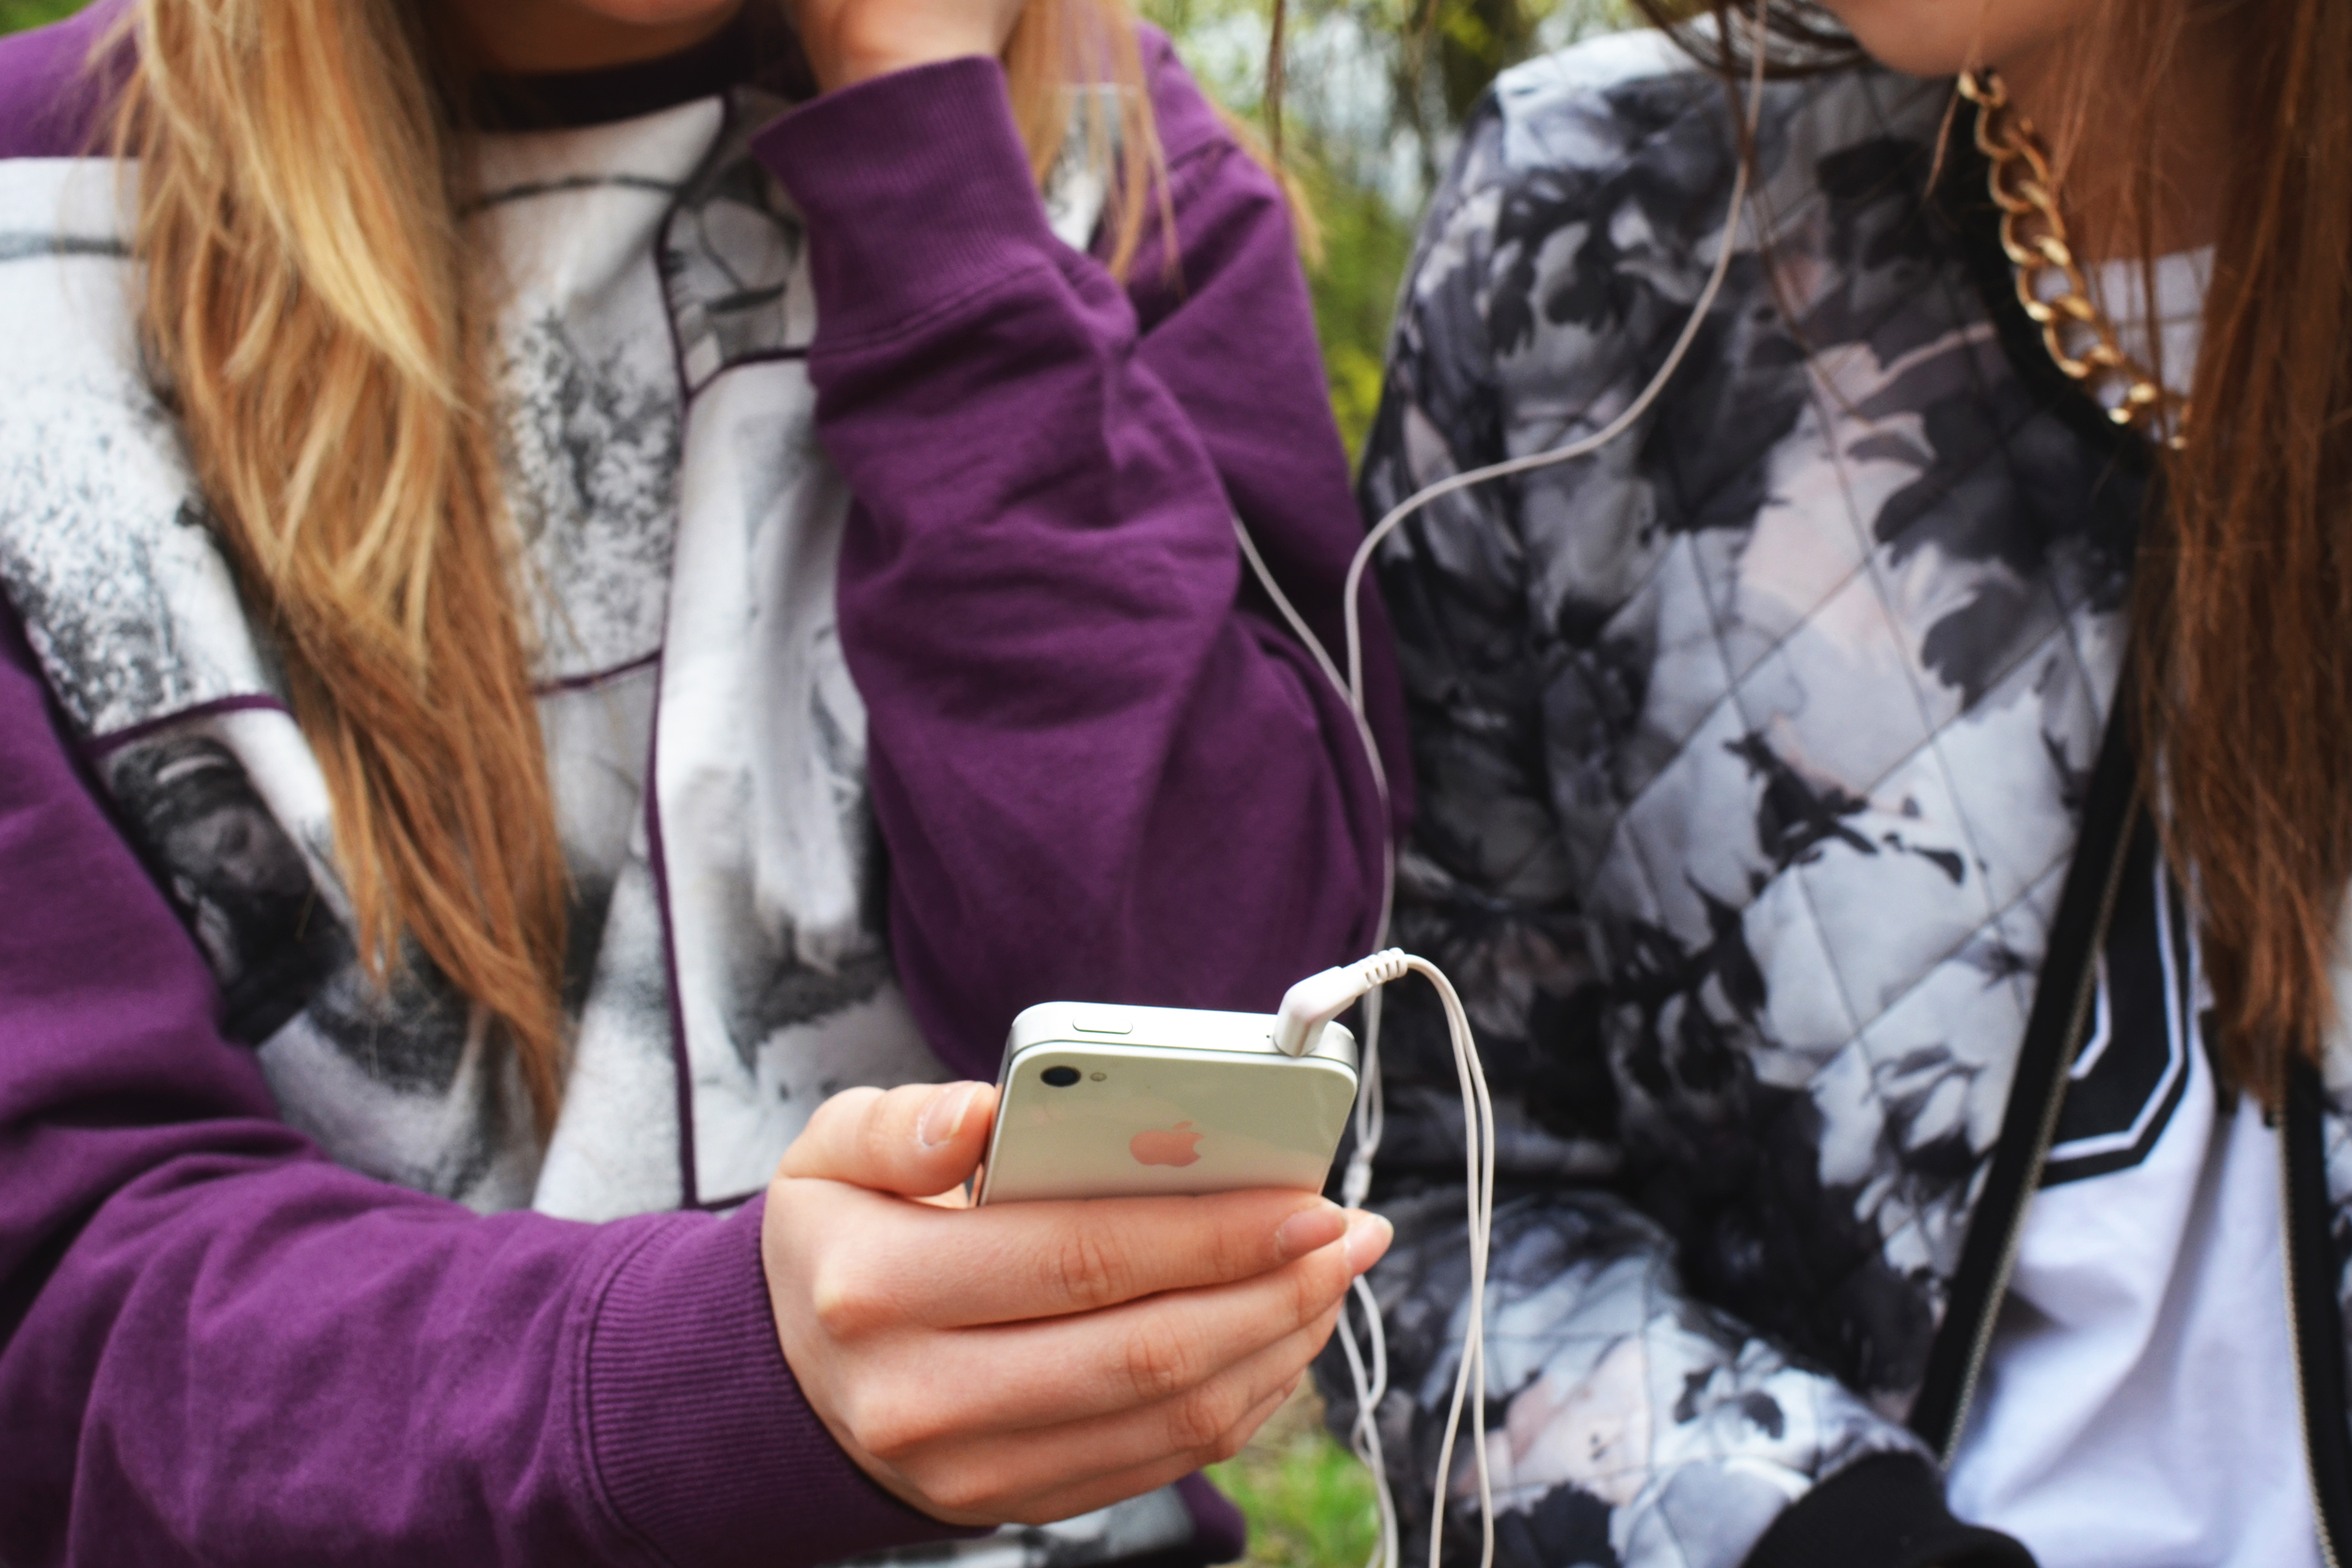 tuning-in-means-turning-off-technology-headphones-ipod-girls-Americas-Family-Coaches-radio-audio-podcast